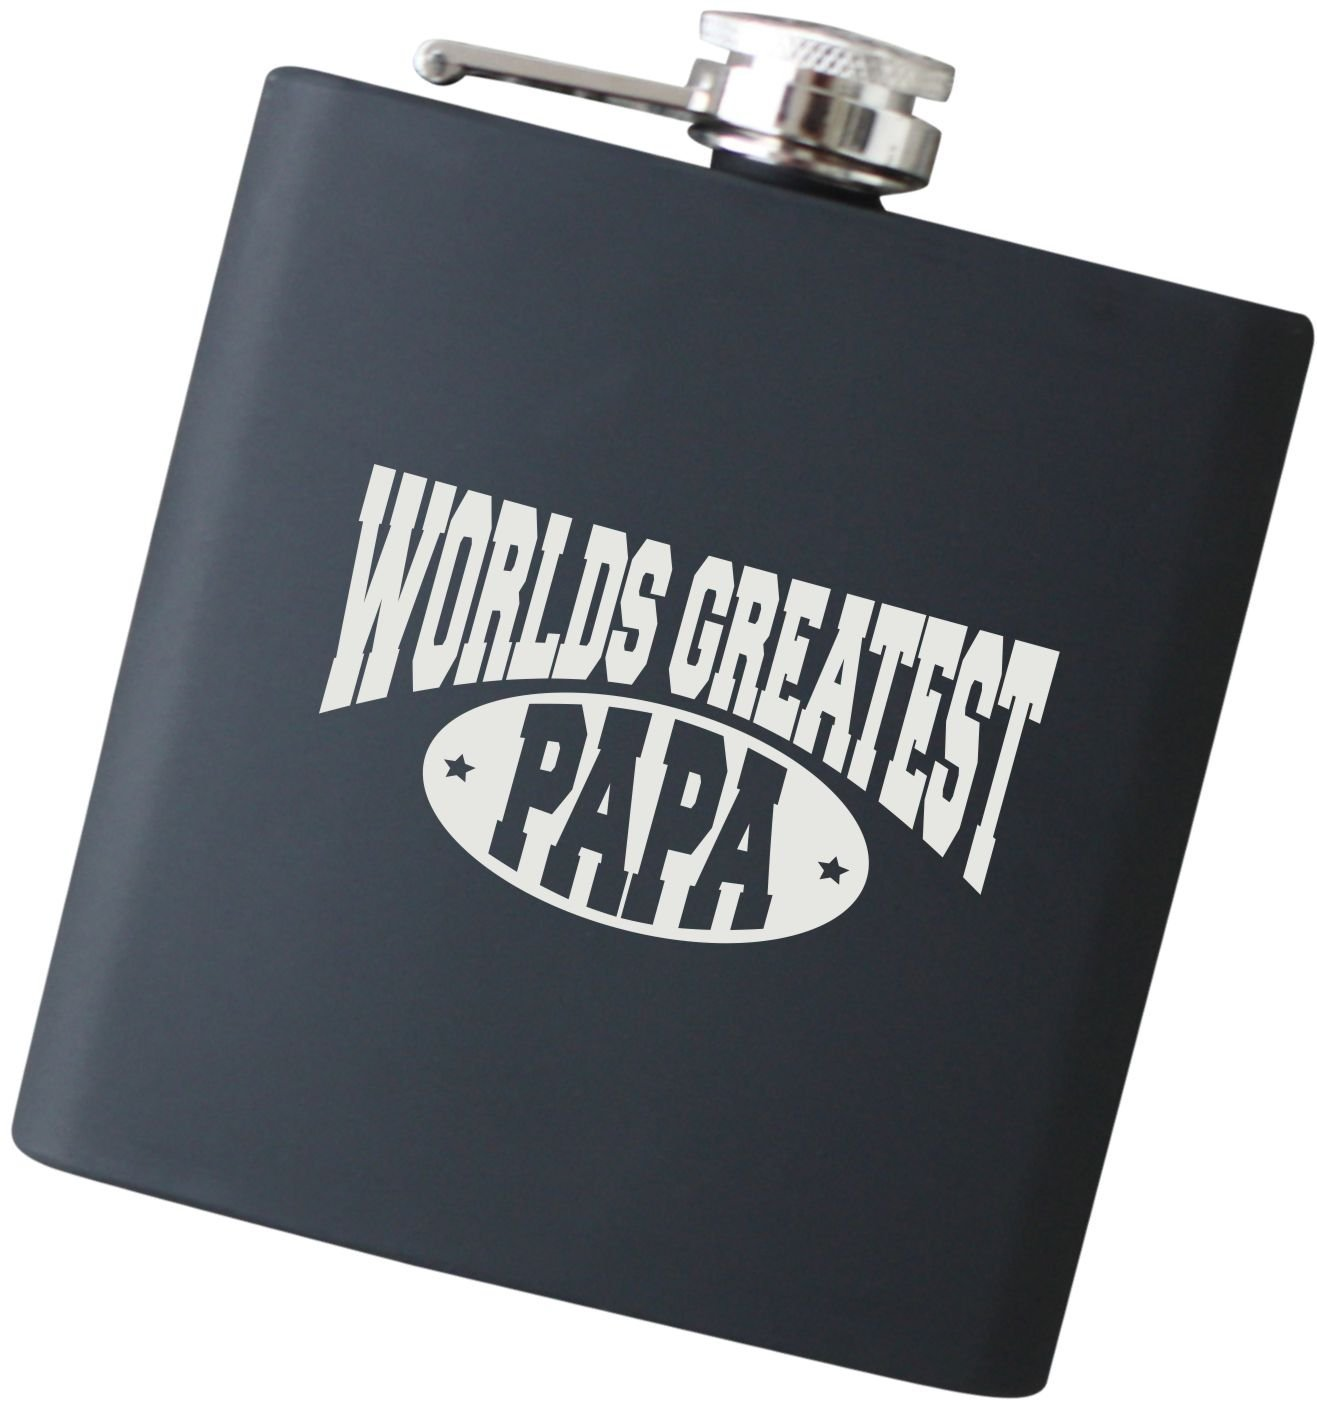 Engraved Black Hip Flask, Worlds Greatest Papa - Perfect for Father's Day Gift, Gift for Grandpa, Birthday Gifts for Dad - F46.NC